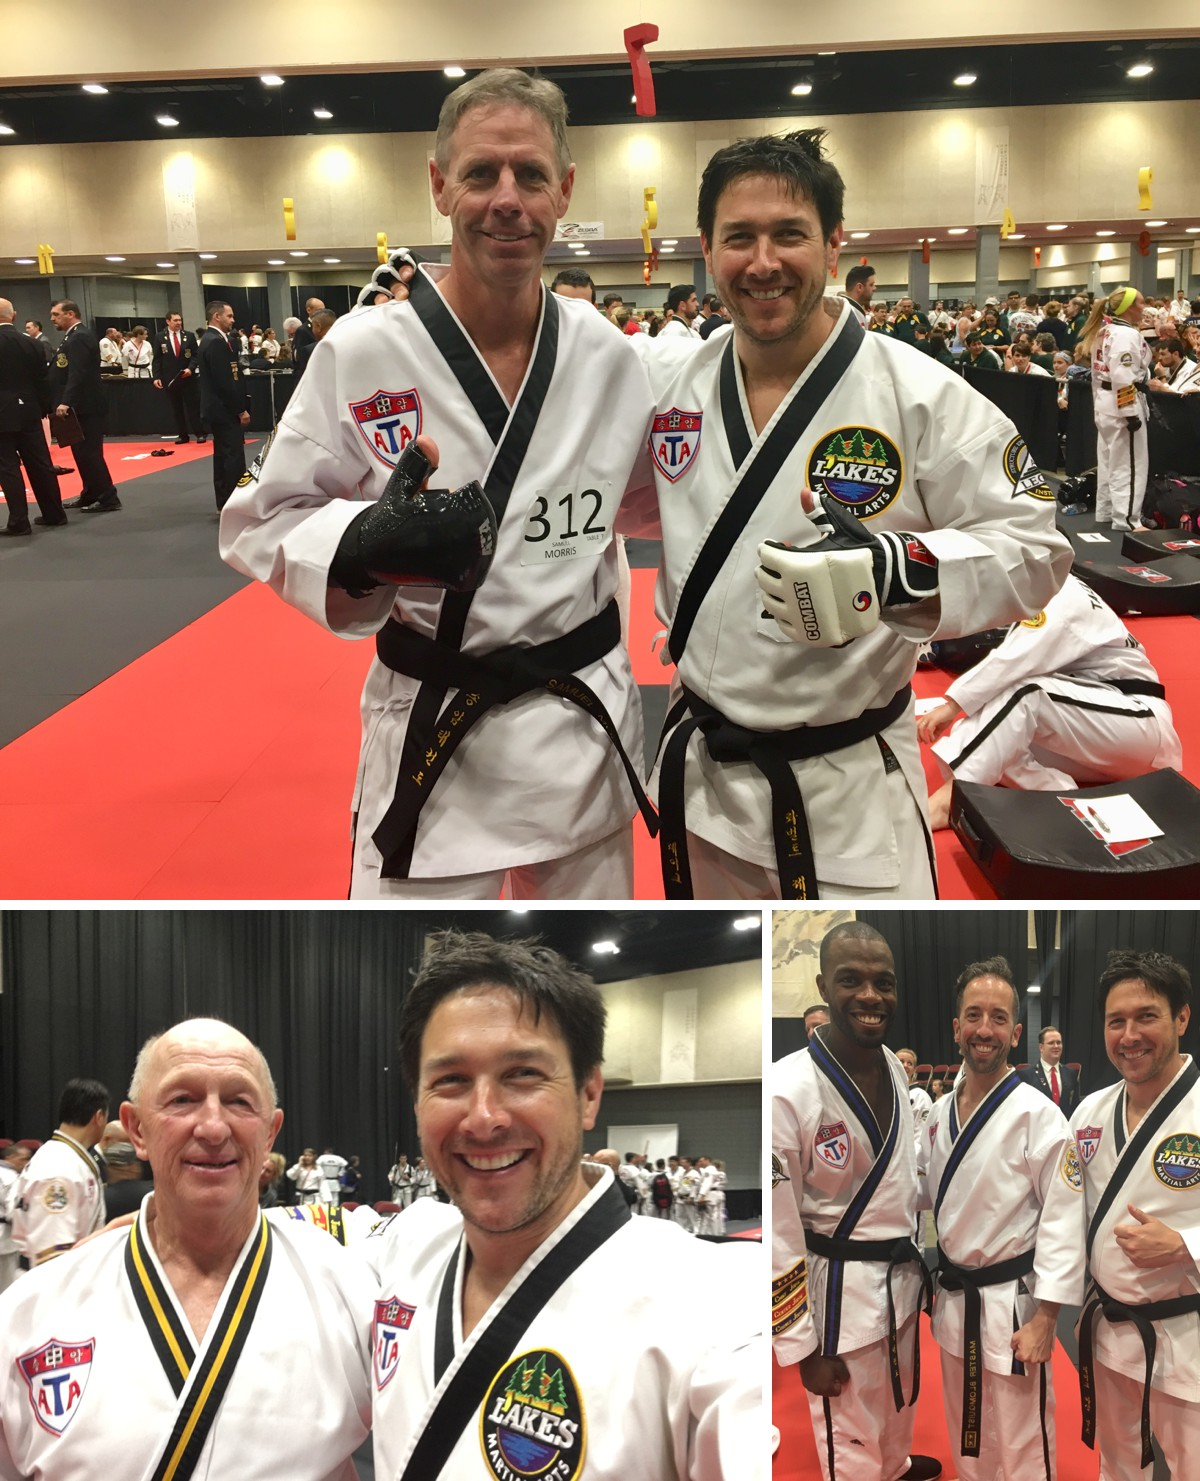 Mr Moore and Mr. Kern in the testing ring along with over 50 others (top). Chief Master Jager tested for the rank of 9th degree black belt (left) as did my training instructor Master Blomquist passed his test for 7th degree! What a great memory to share and sense of accomplishment to bring back to our students!